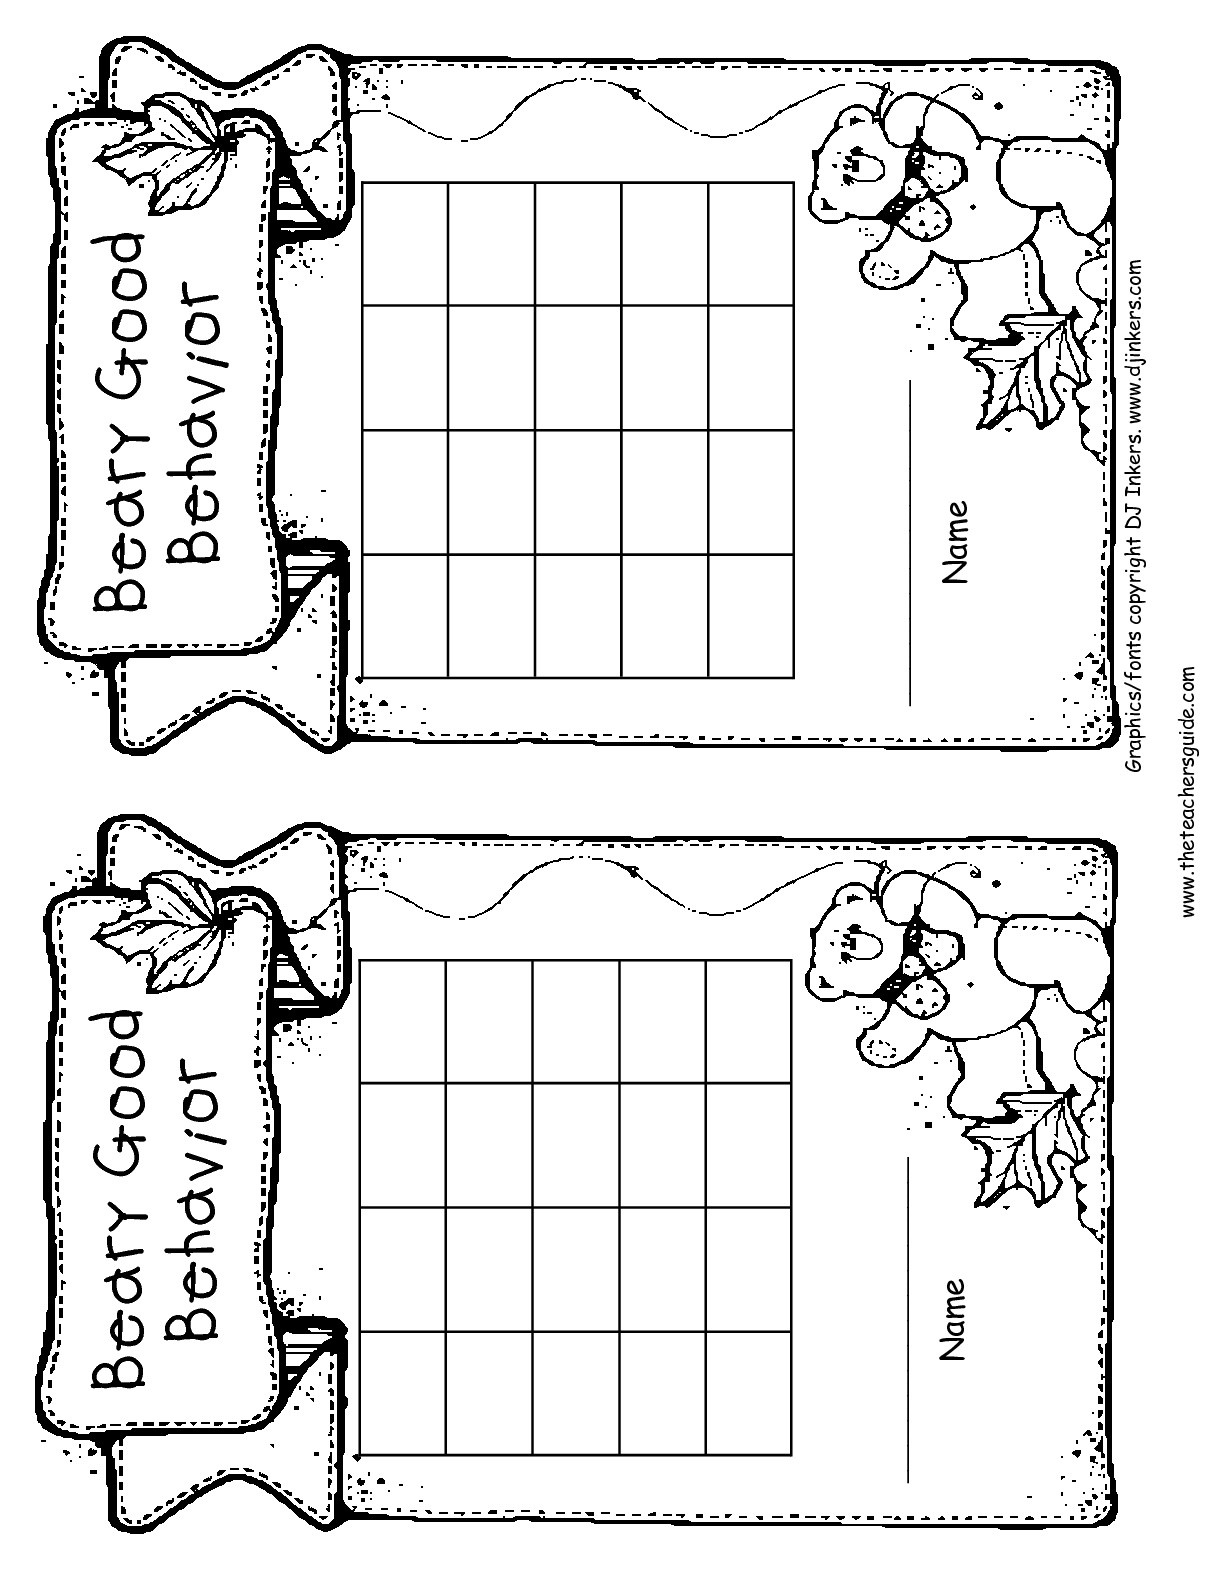 Free Printable Reward And Incentive Charts - Free Printable Charts For Classroom